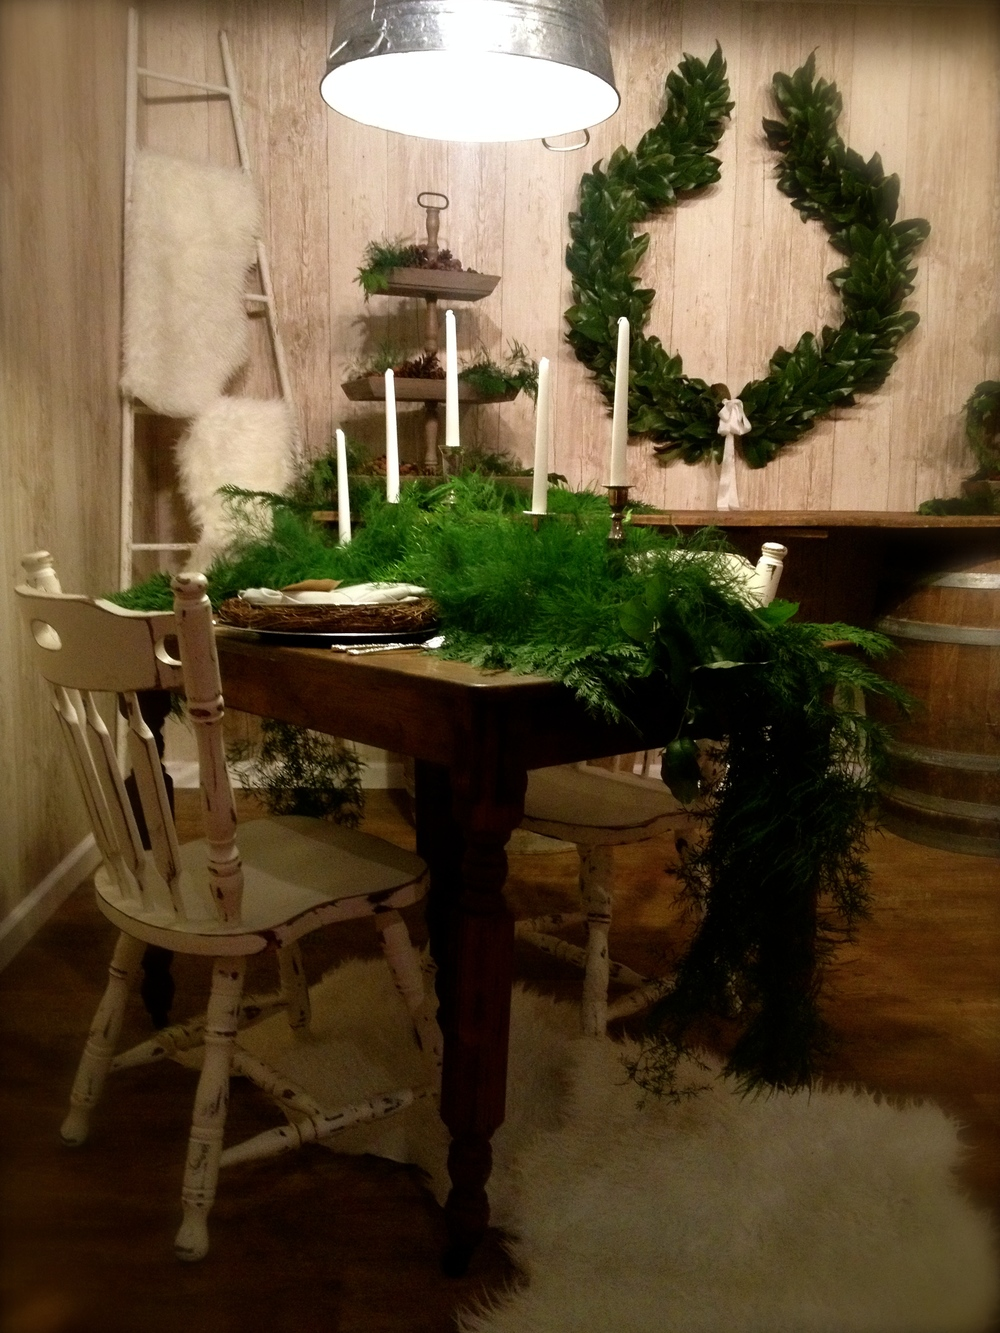 SouthernChristmasShow_OldSouthVintageRentals_PhilosophyFlowers.jpg